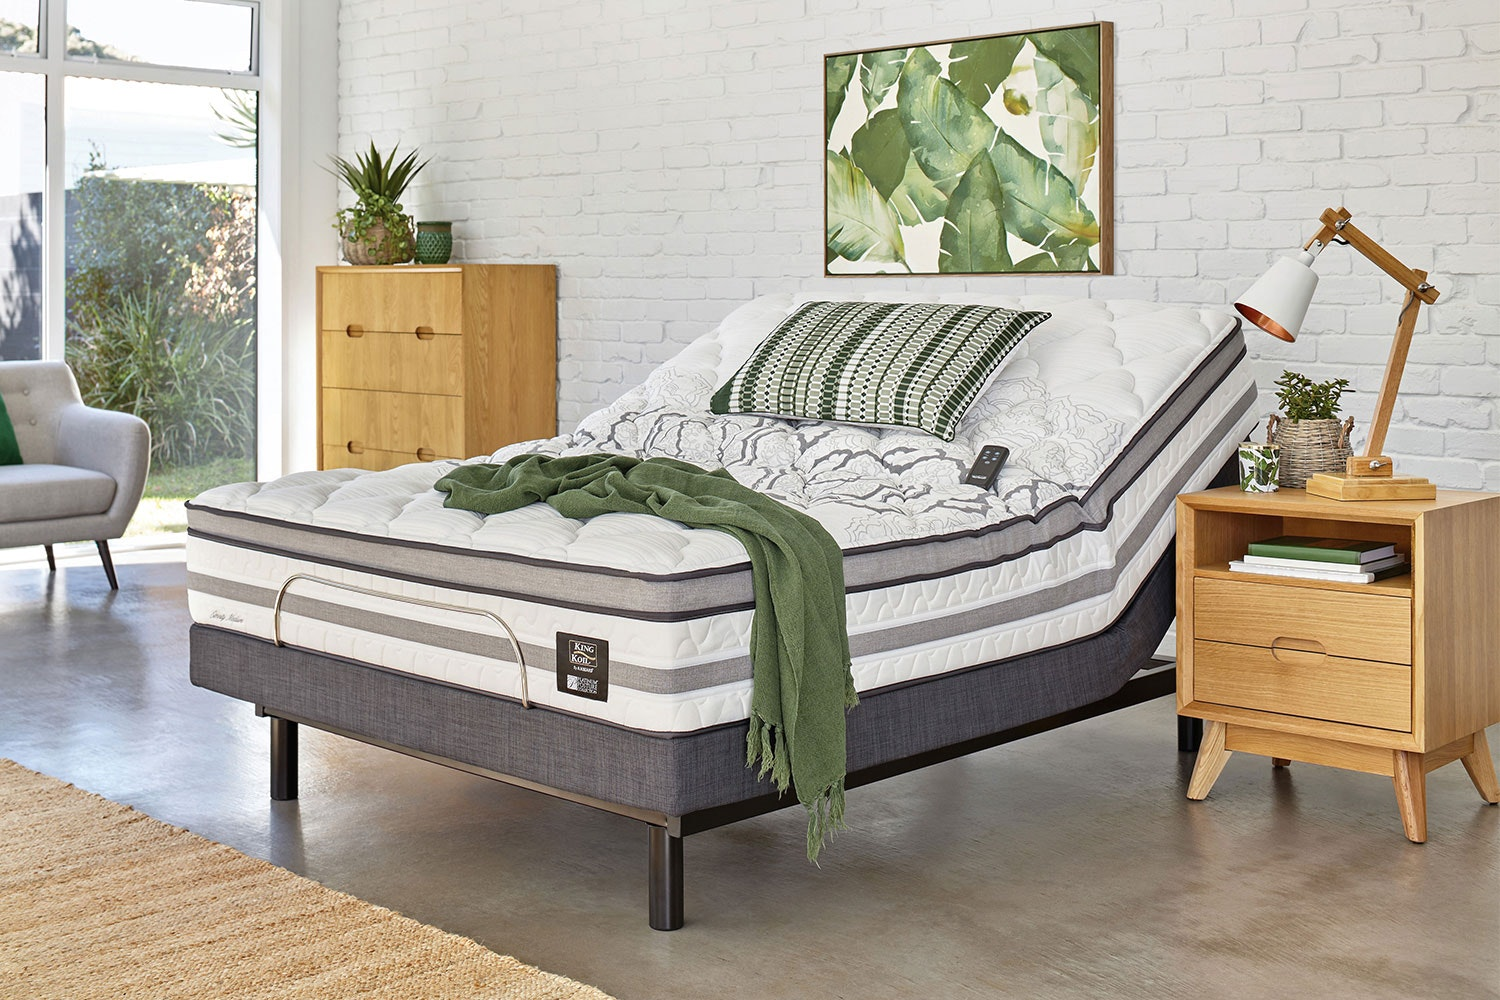 King Koil Eternity Medium Queen Mattress with Lifestyle Adjustable Base by Tempur